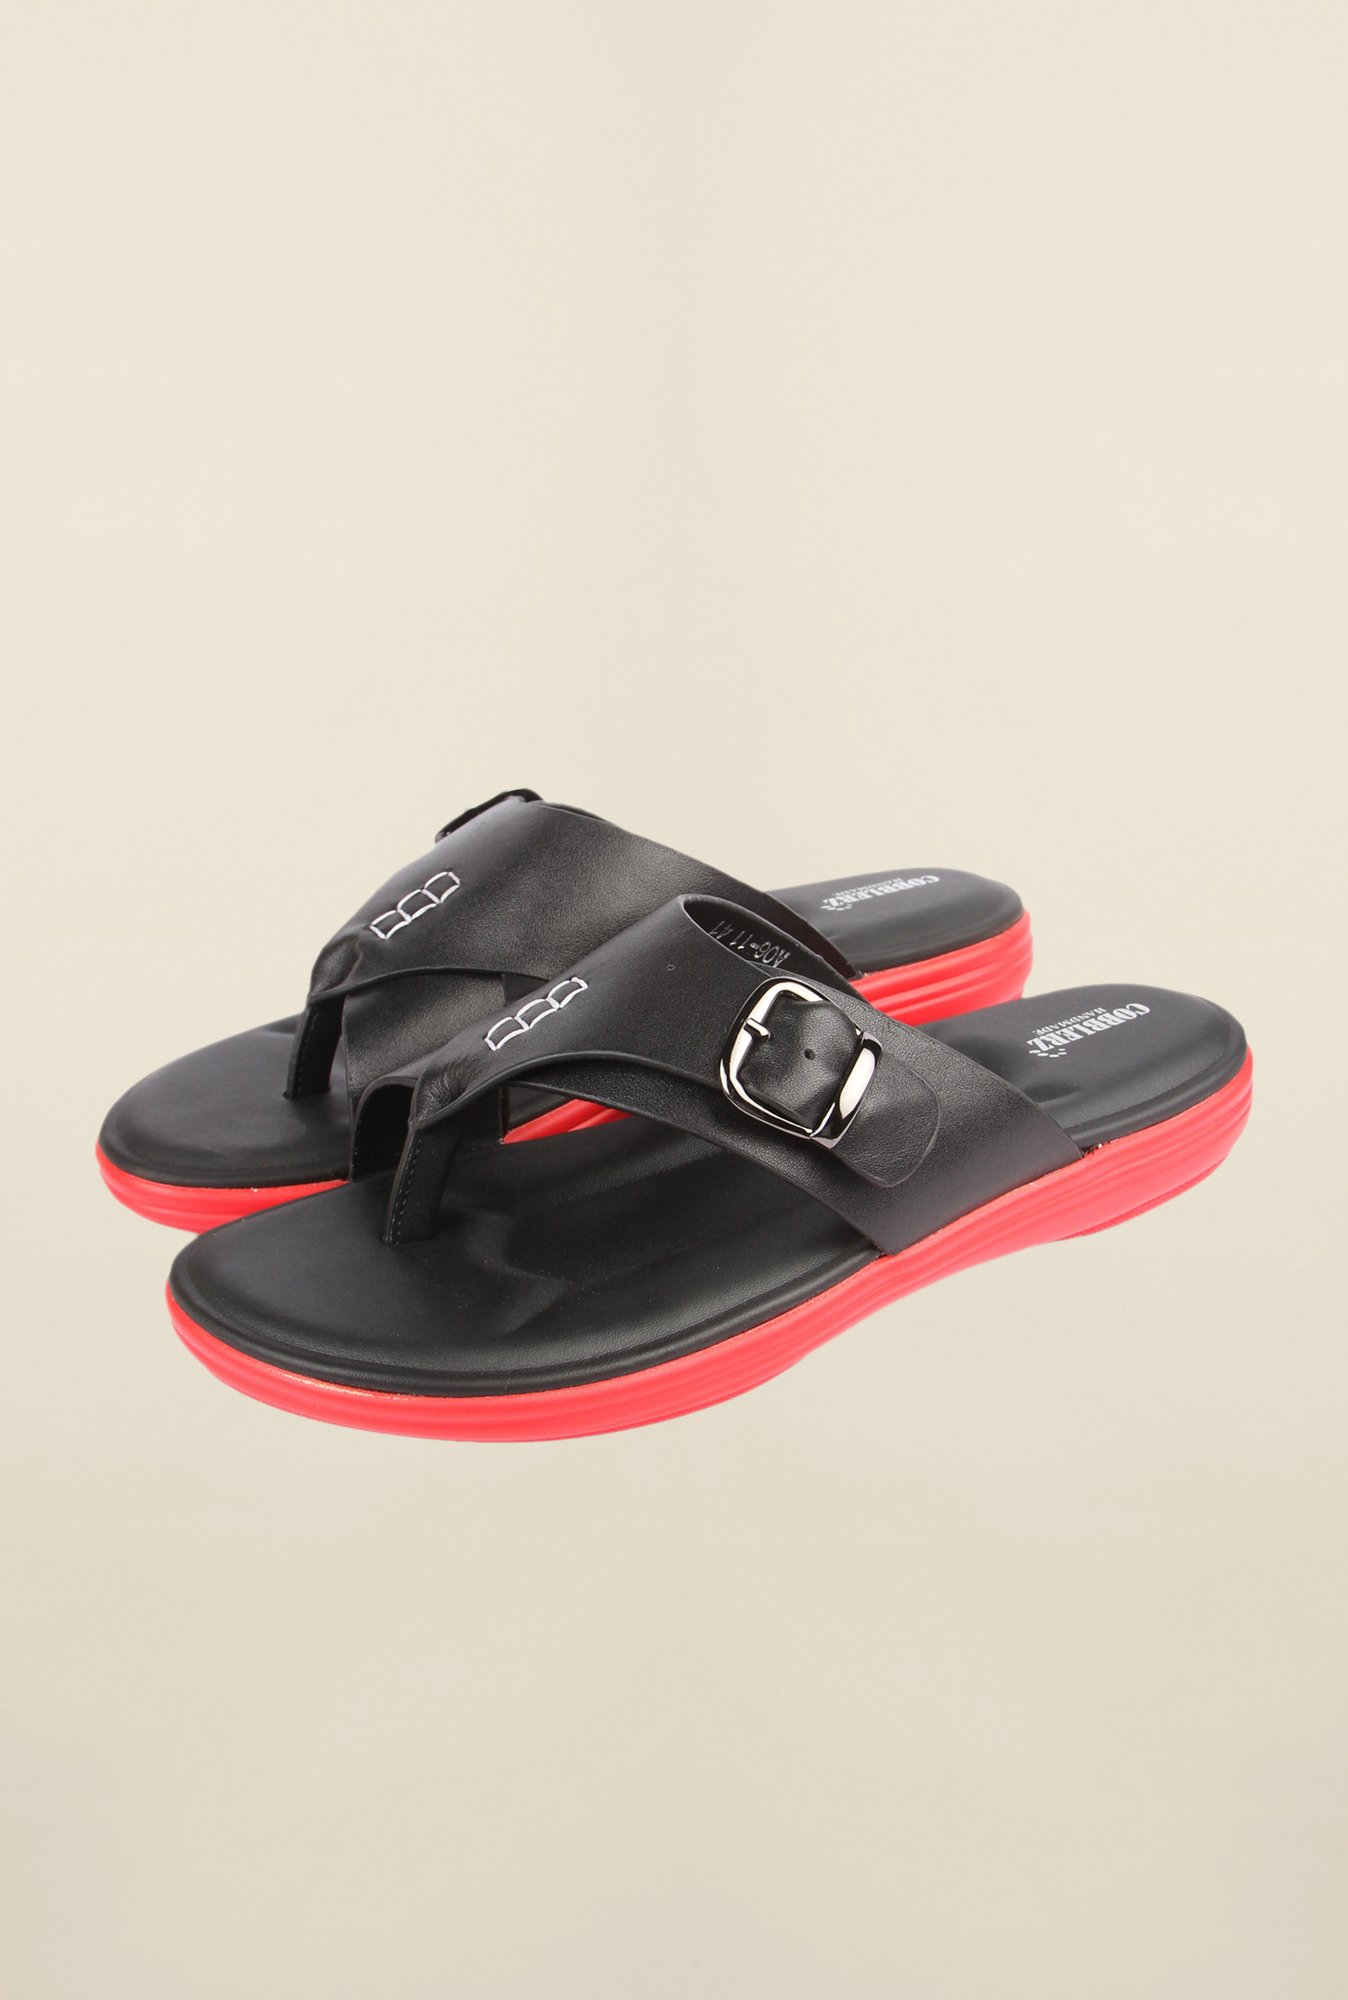 Cobblerz Black & Red Thong Sandals